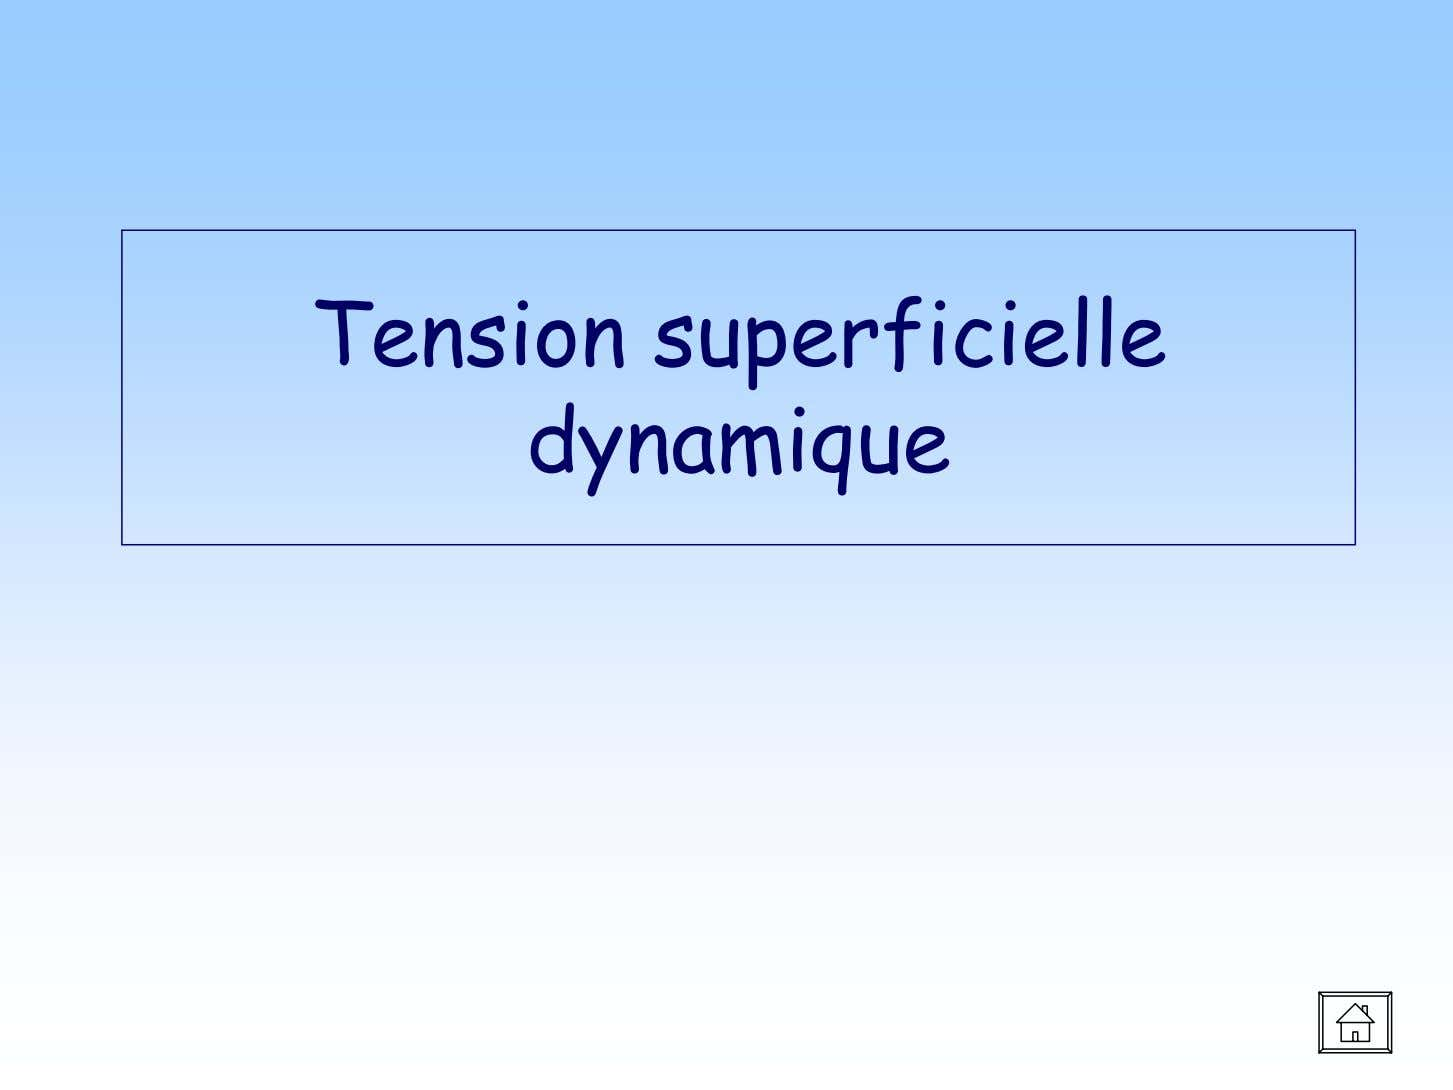 Tension superficielle dynamique